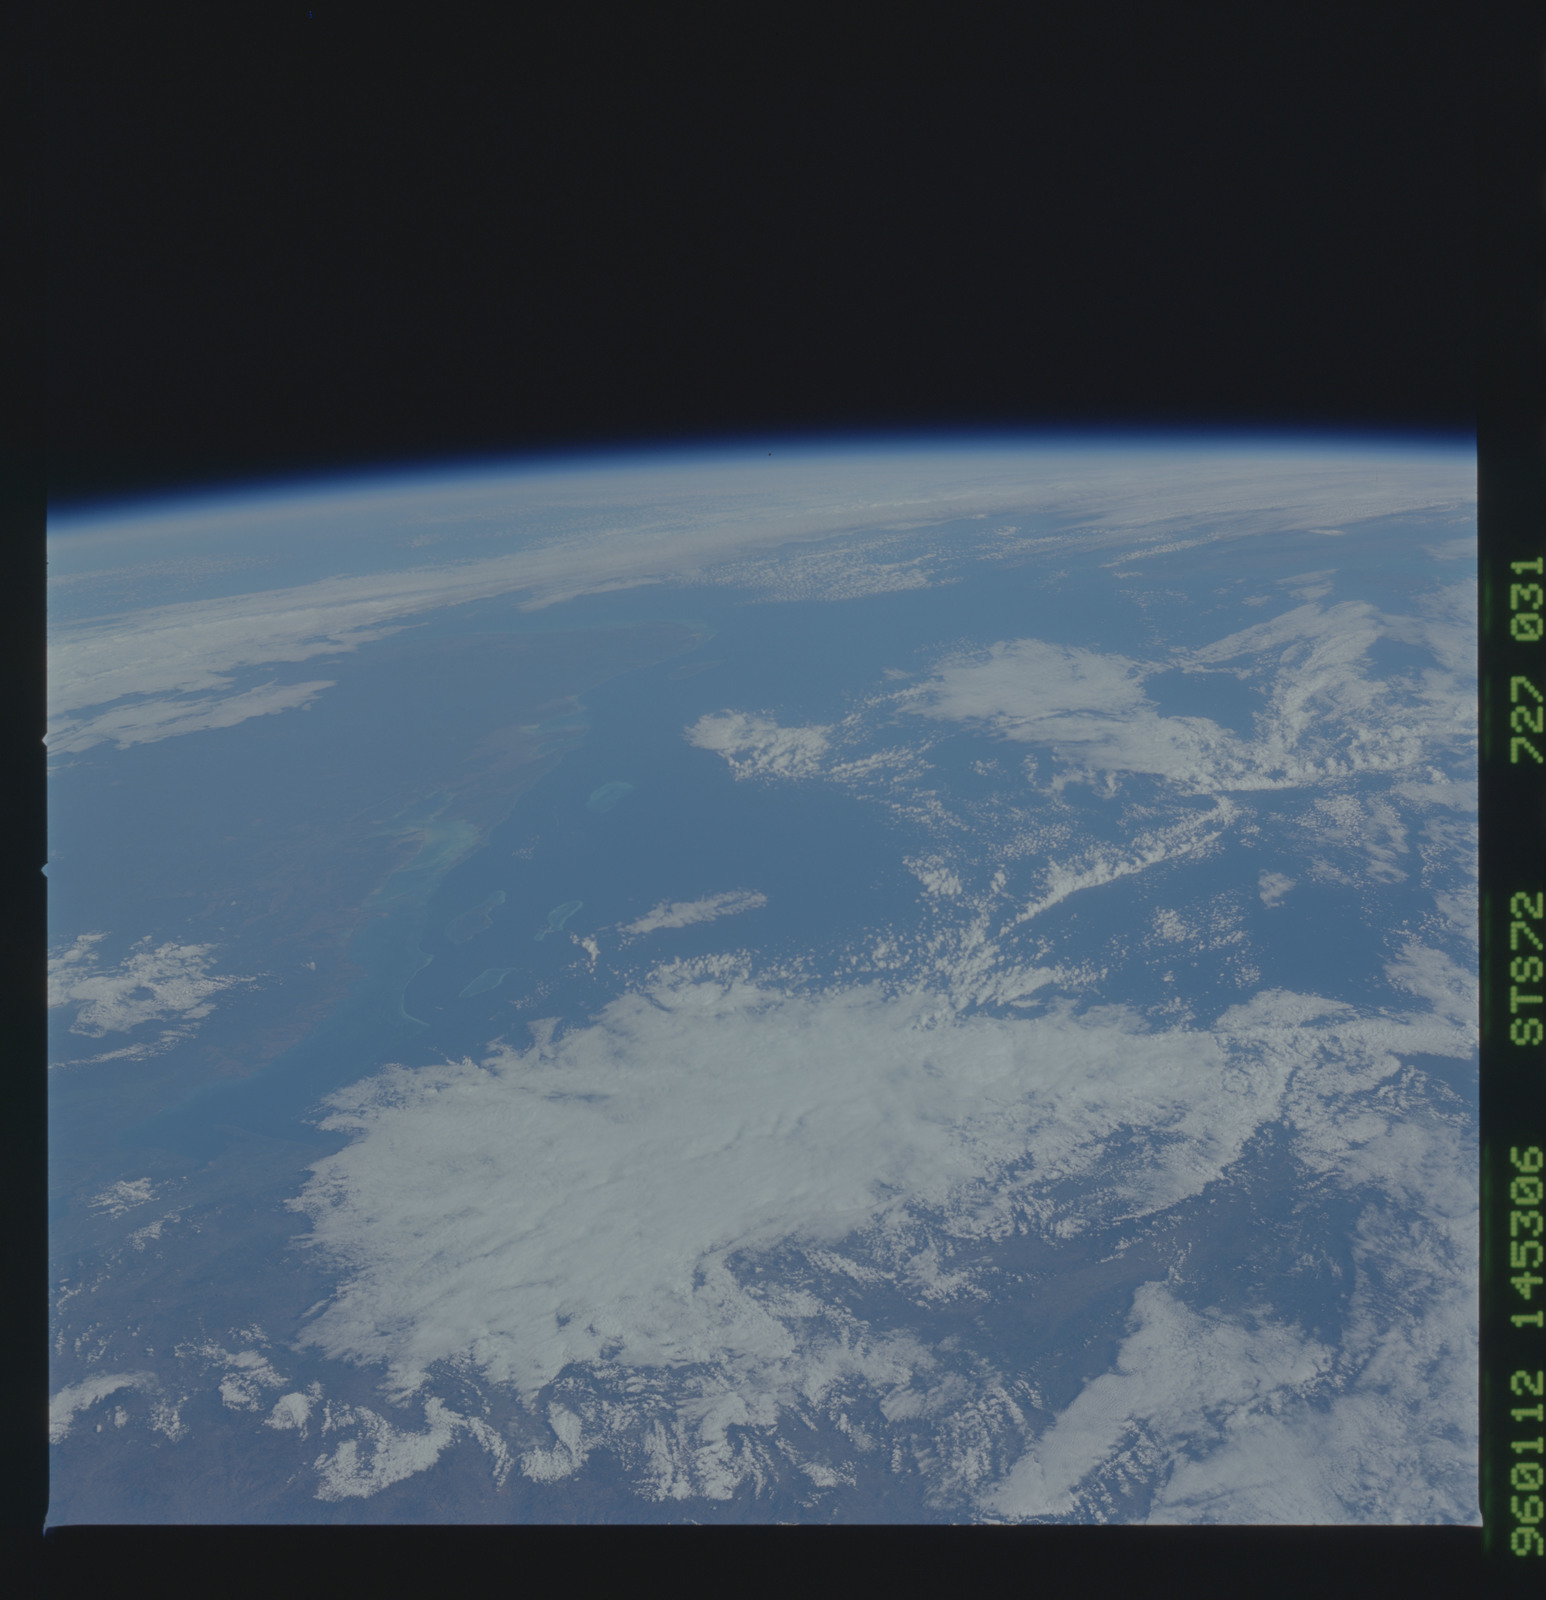 STS072-727-031 - STS-072 - Earth observations taken from shuttle orbiter Endeavour during STS-72 mission